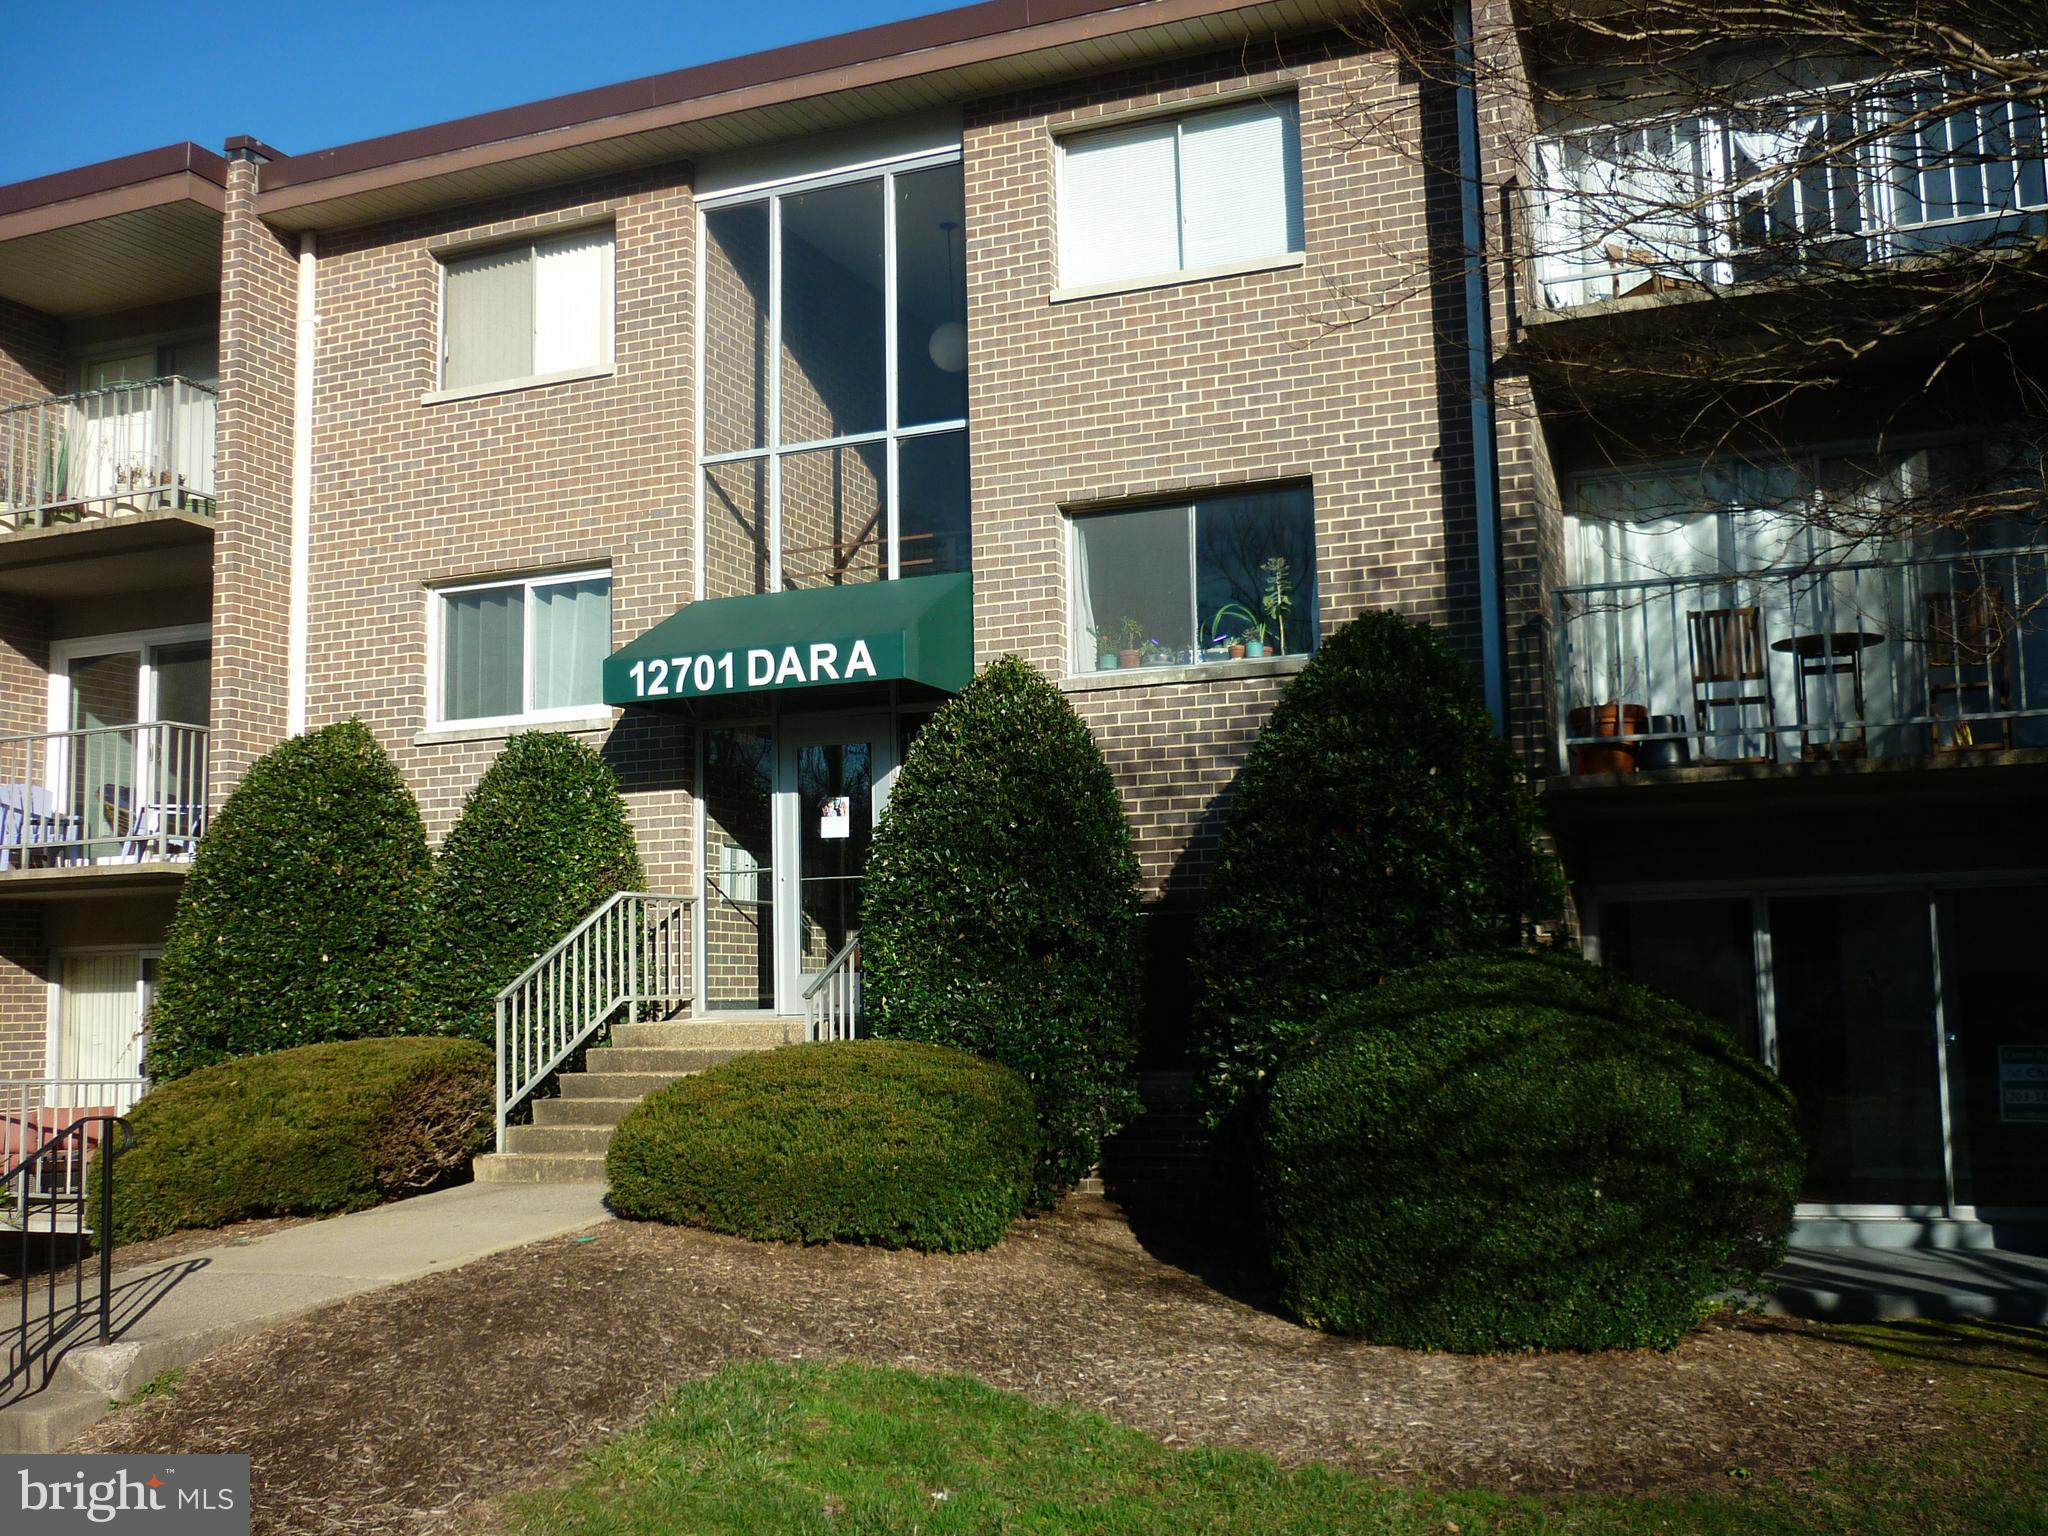 Great  deal for investors or buyers looking to put  some sweat equity in! Spacious  first floor 2 bedroom condo in well located, amenity rich community right outside of Occoquan.  Newer wood-like laminate flooring in bedroom and main living area.  Updated  bathroom. Stainless appliances. Just needs a coat of paint and some TLC.  Patio  overlooks community pool. Easy parking right outside building Condo dues include all utilities including cable.  Great potential for rental or first time buyer..  This is a bankruptcy. All terms  of listing and sale are subject to bankruptcy court approval.  Property will be sold completely as-is.